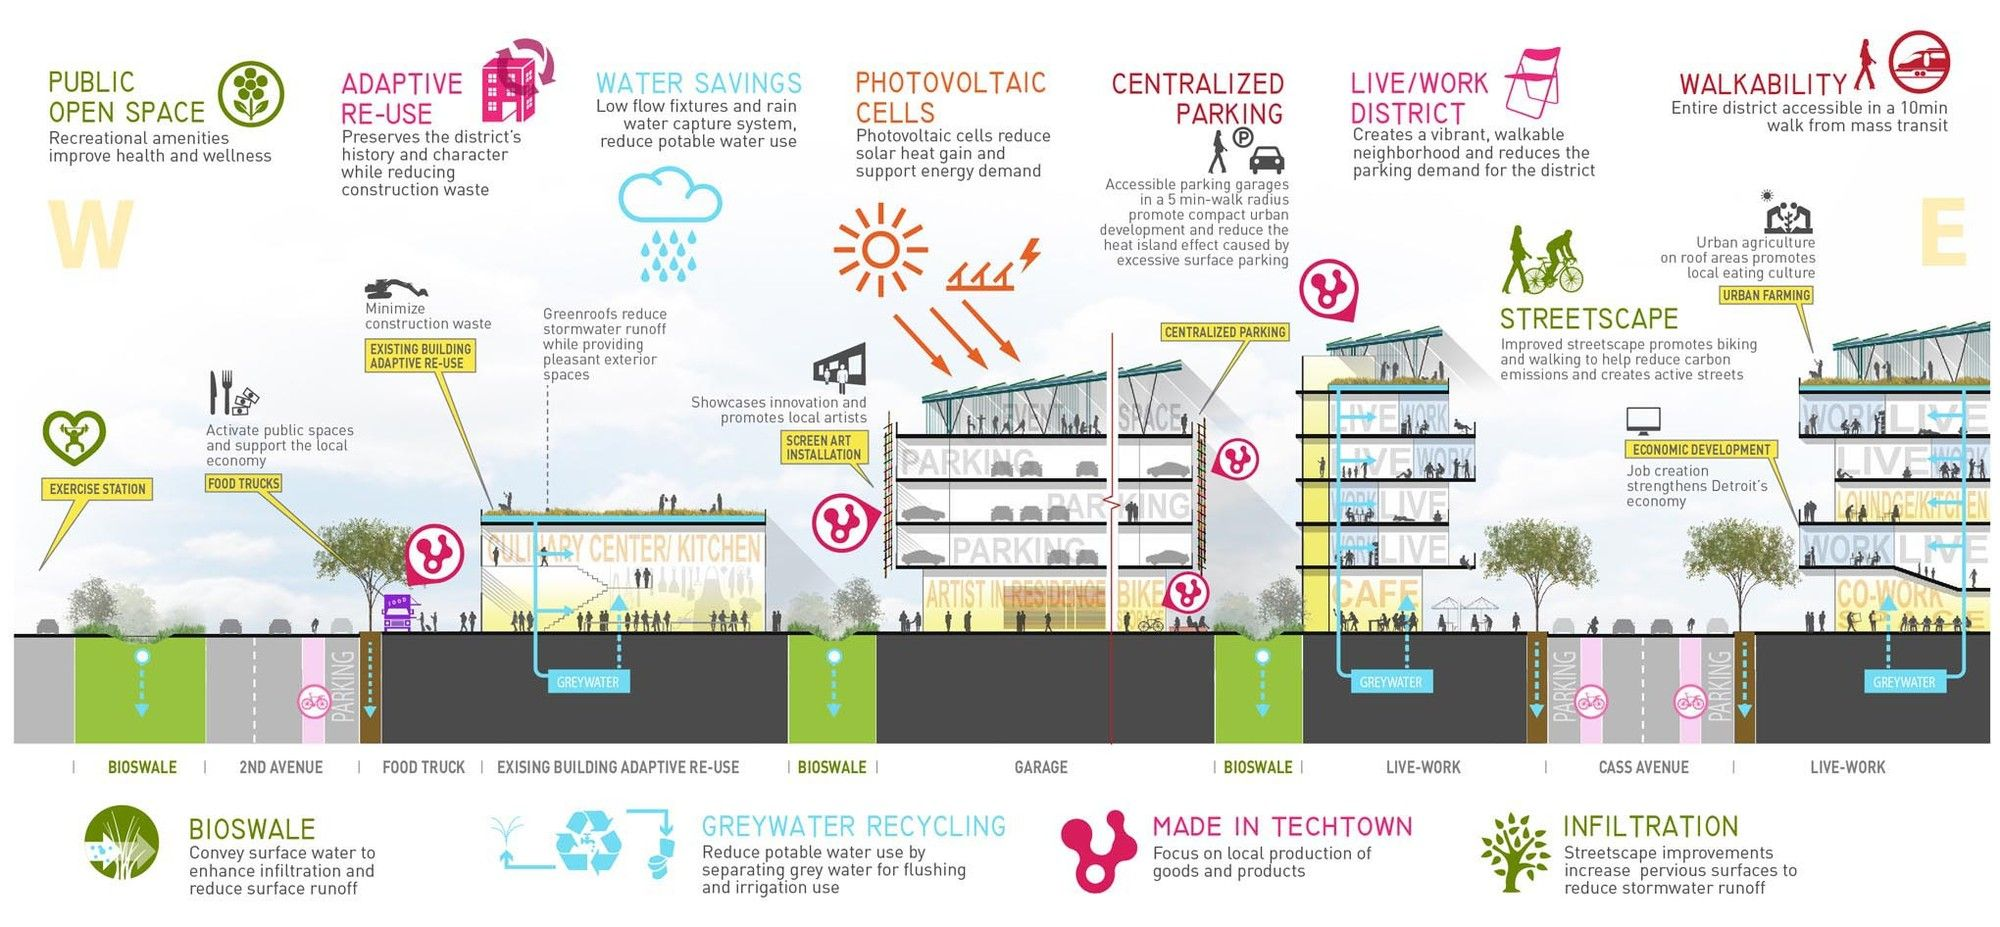 Gallery Of Techtown District Plan Sasaki Associates 23 Sustainability Urban Design